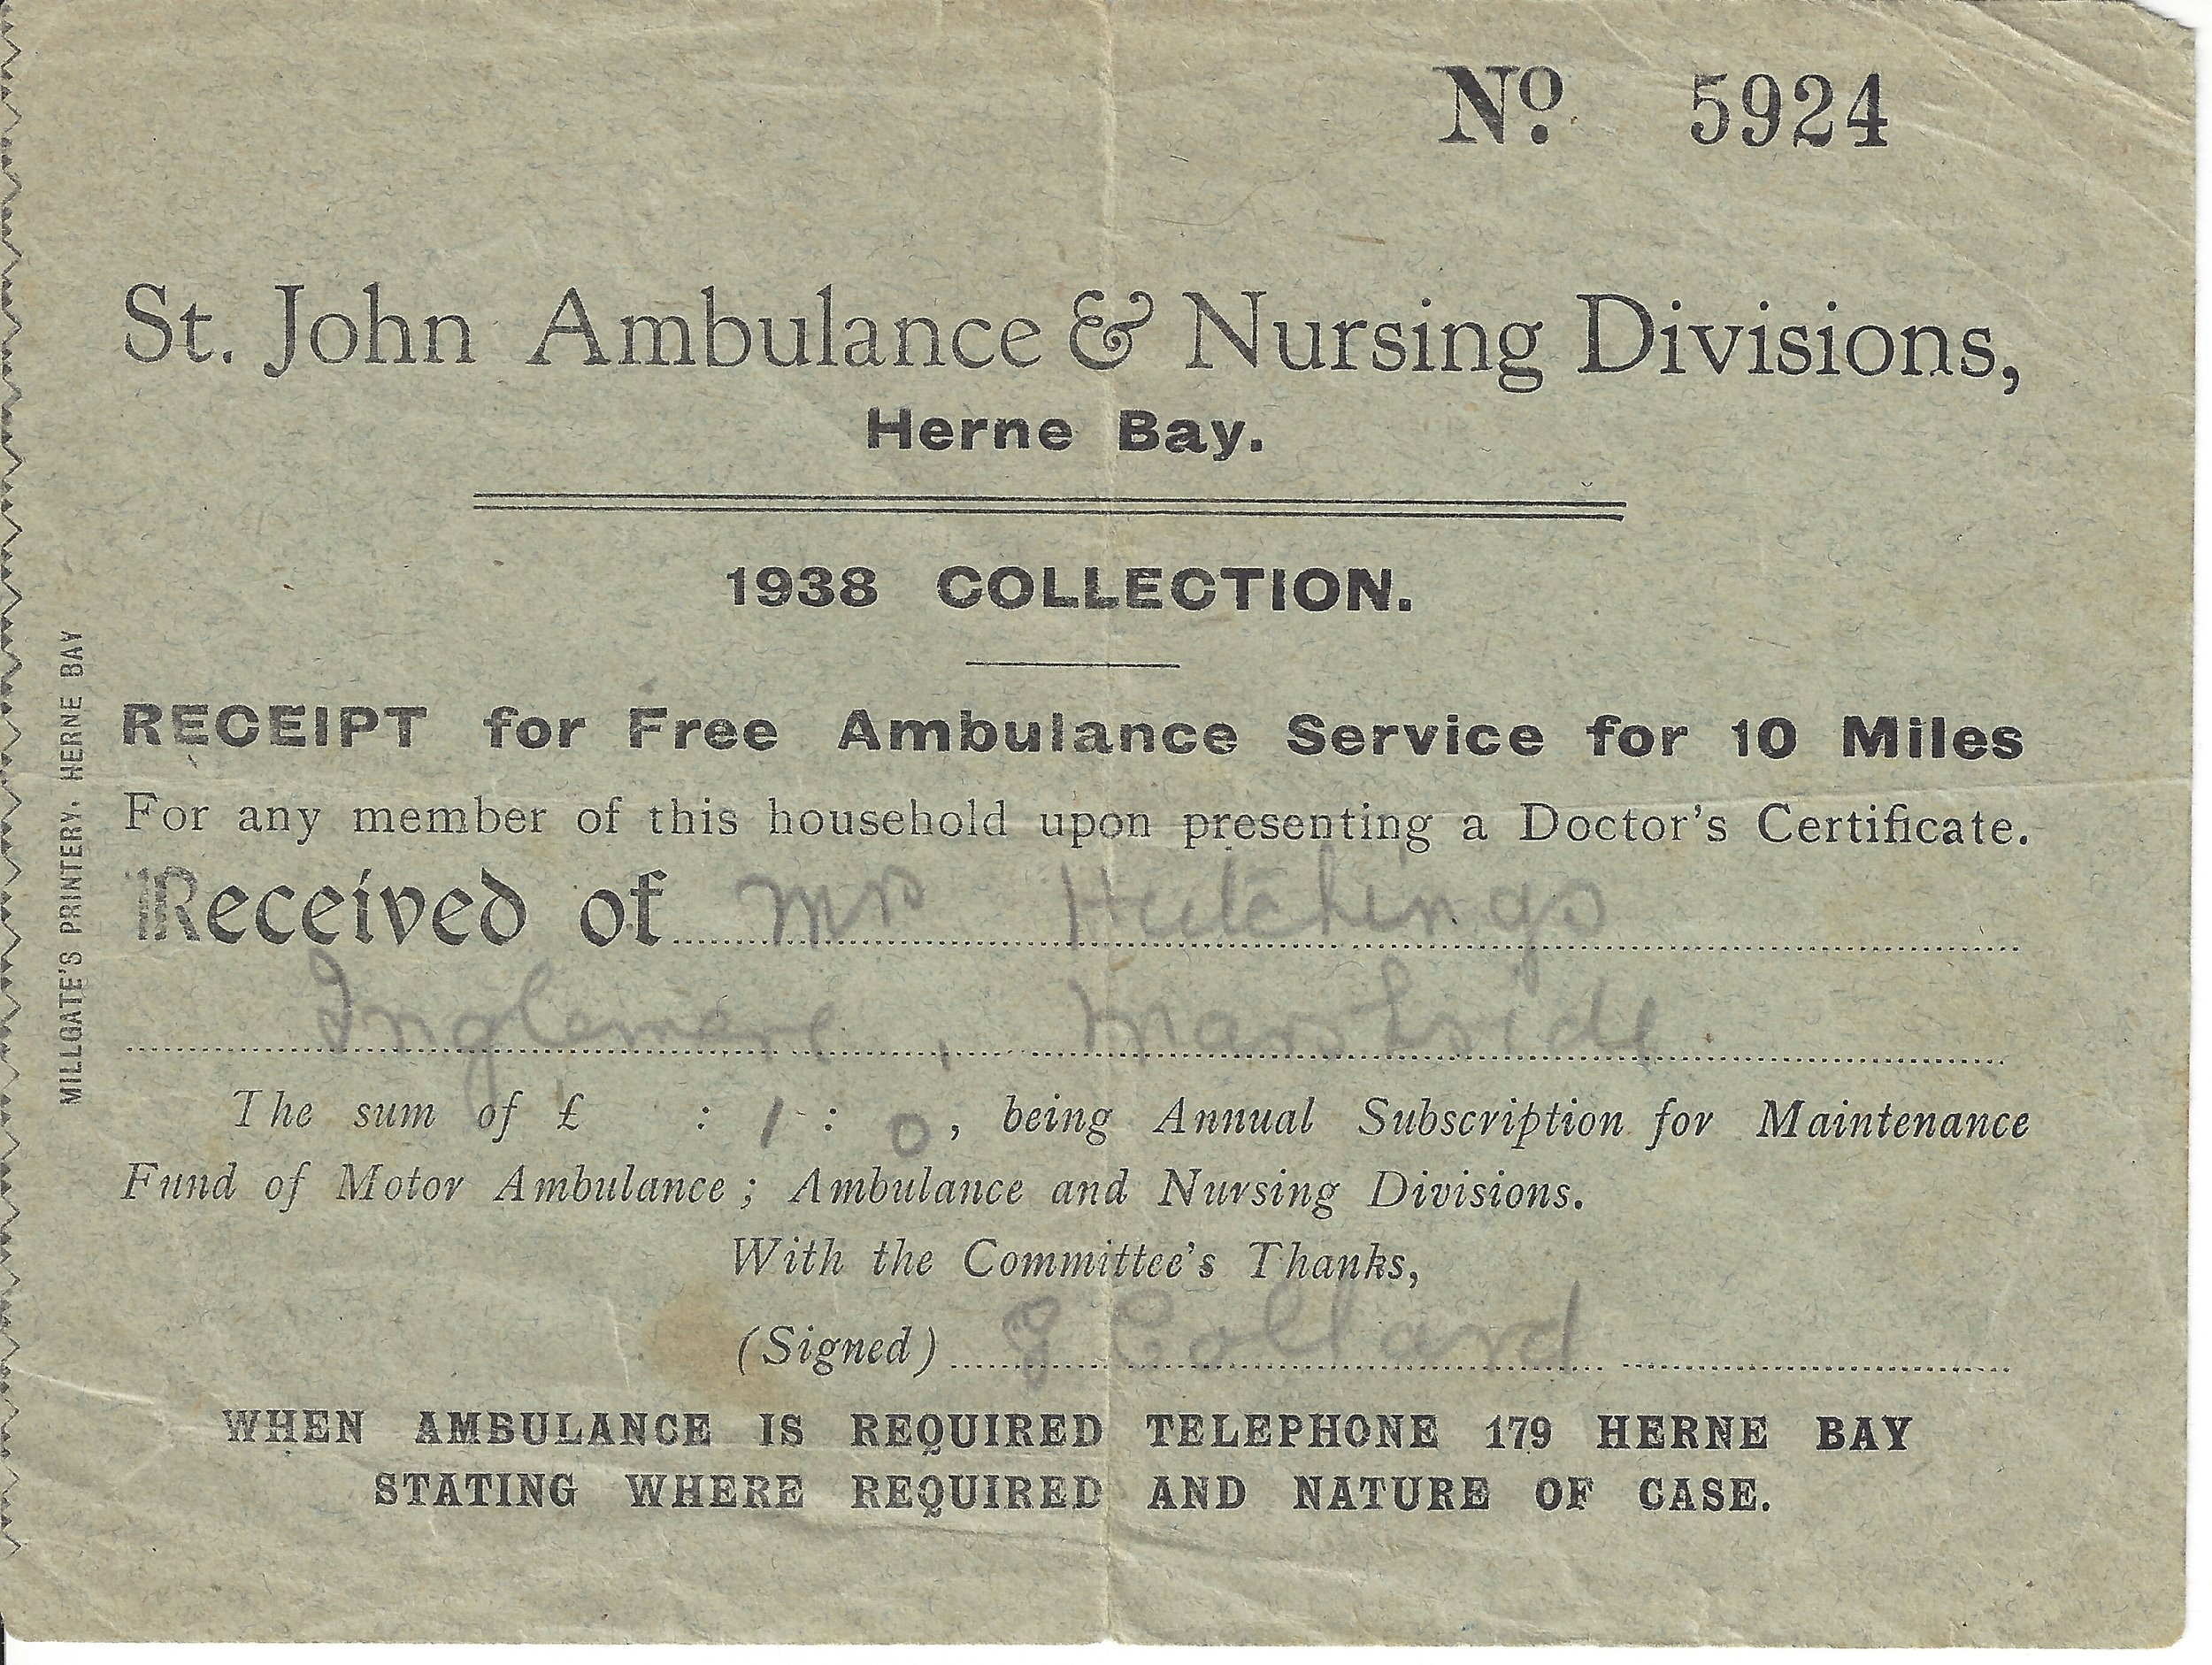 Receipt for Free Ambulance Service for 10 miles, 1938.